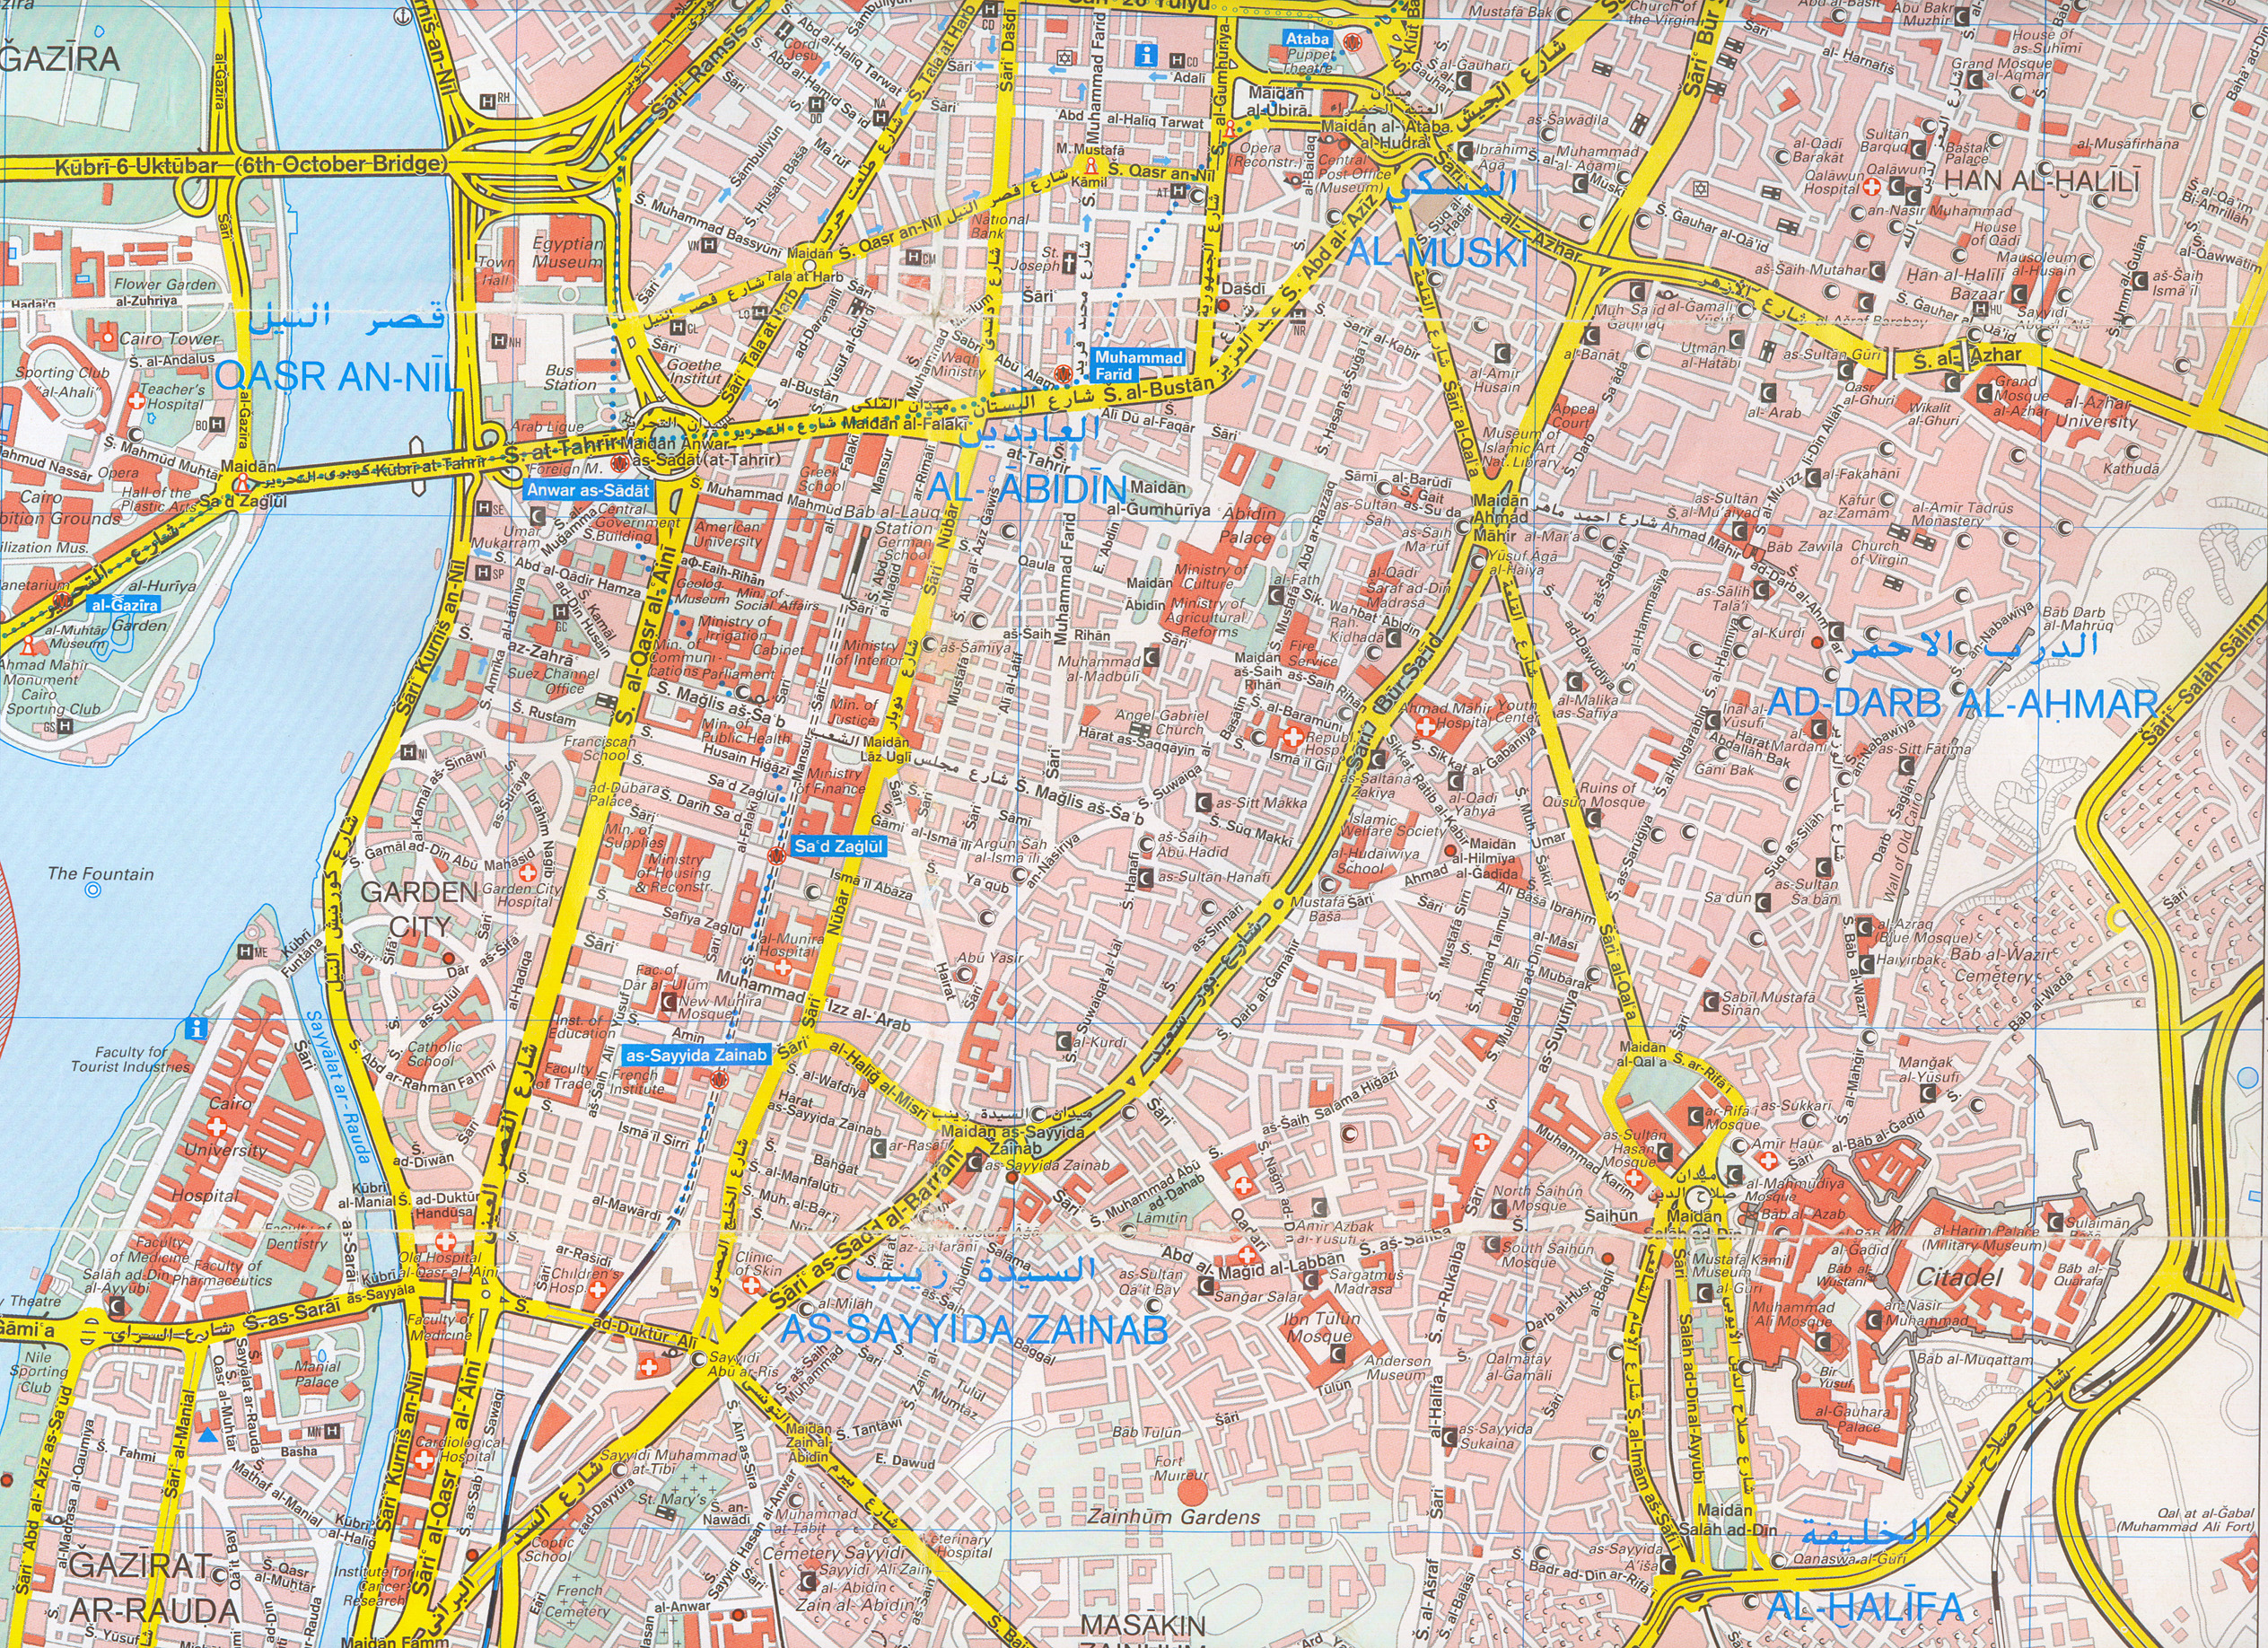 Cairo Egypt Tourist Map Cairo Egypt mappery